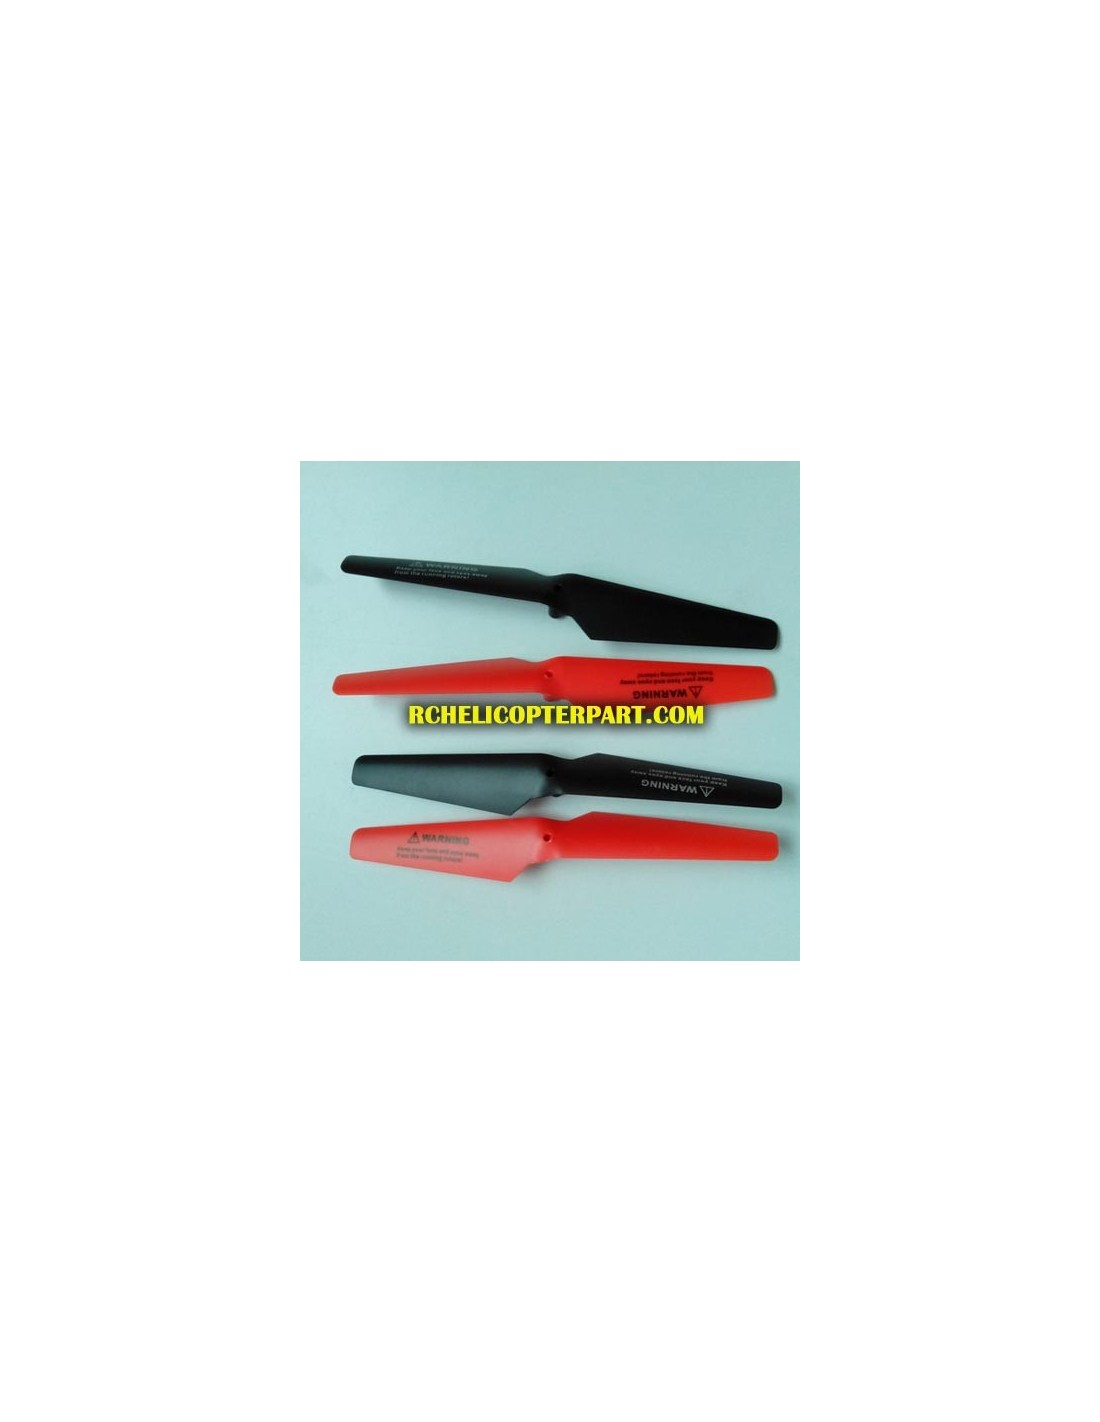 udi rc helicopter parts html with 803 148 18 Tail Rotor Parts For Skyrover Yw857148 Exploiter Helicopter on 409 123 01 Main Blade Parts For Sky Rover Yw857123 Swift Helicopter as well New Brushless Motor System Mjx Rc F45 F645 Rc Helicopter Parts P 2097 as well 946 Fx071c 21 Fx071c Parts 4ch Rc Helicopter Parts Receiver Board 0110500712119 in addition Mjx F45 F645 Remote Control Transmitter Of Version 2 P 4905 also 476 123 23 Cabin Parts For Sky Rover Swift Rc Helicopter.